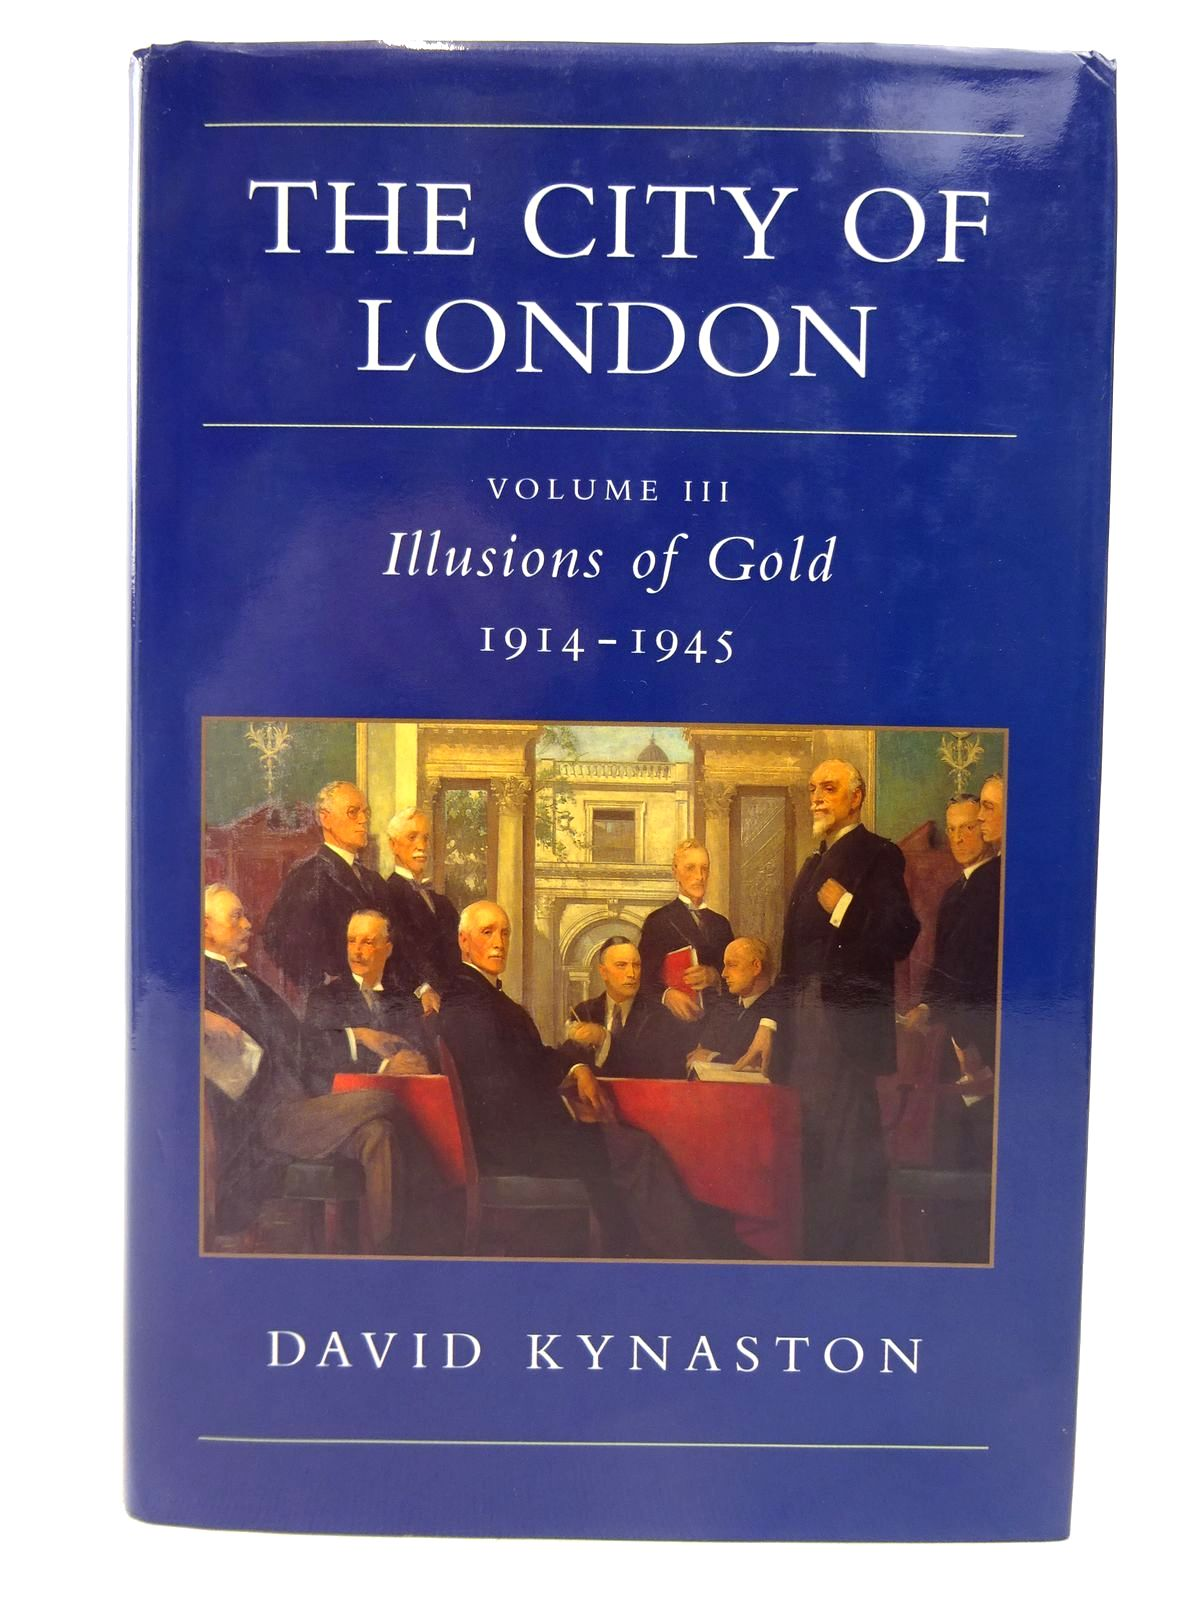 Photo of THE CITY OF LONDON VOLUME III: ILLUSIONS OF GOLD 1914-1945 written by Kynaston, David published by Chatto & Windus (STOCK CODE: 1816901)  for sale by Stella & Rose's Books